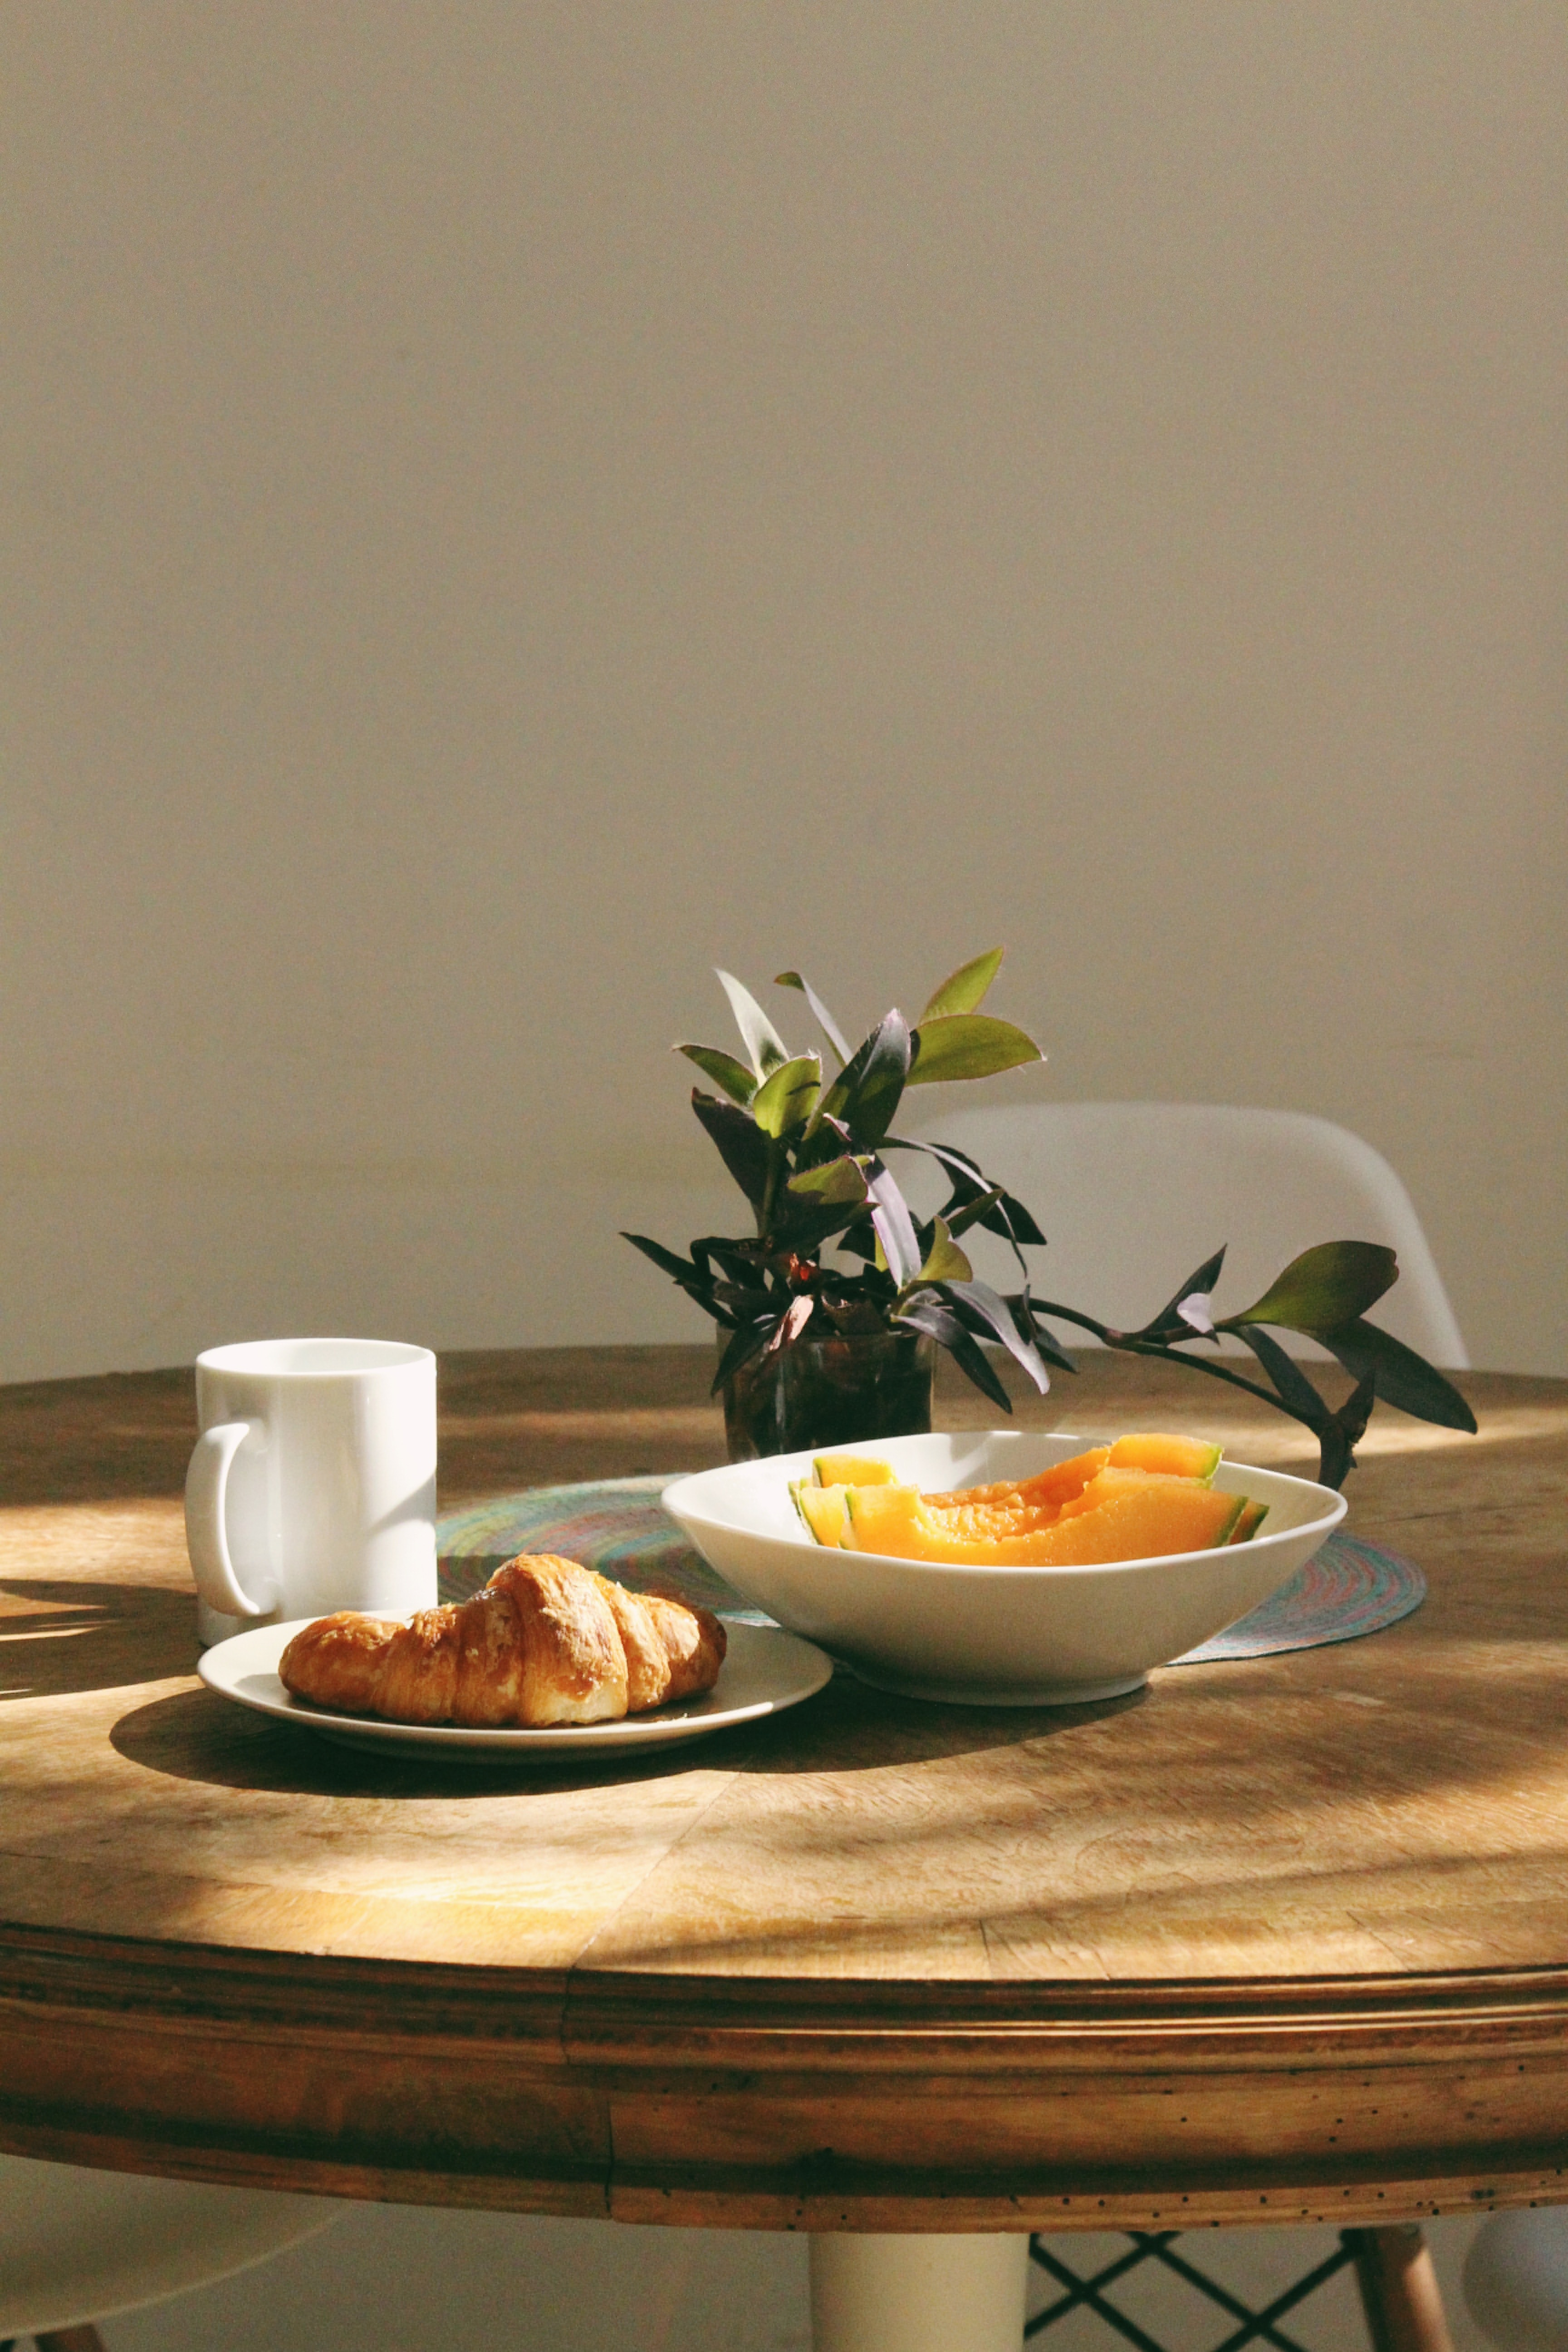 A breakfast sits of a white mug of coffee, a croissant, and two slice of cantaloupe sit on a wooden table alit in morning sunshine with a green plant as centrepiece. Photo by Tatiana from Pexels.